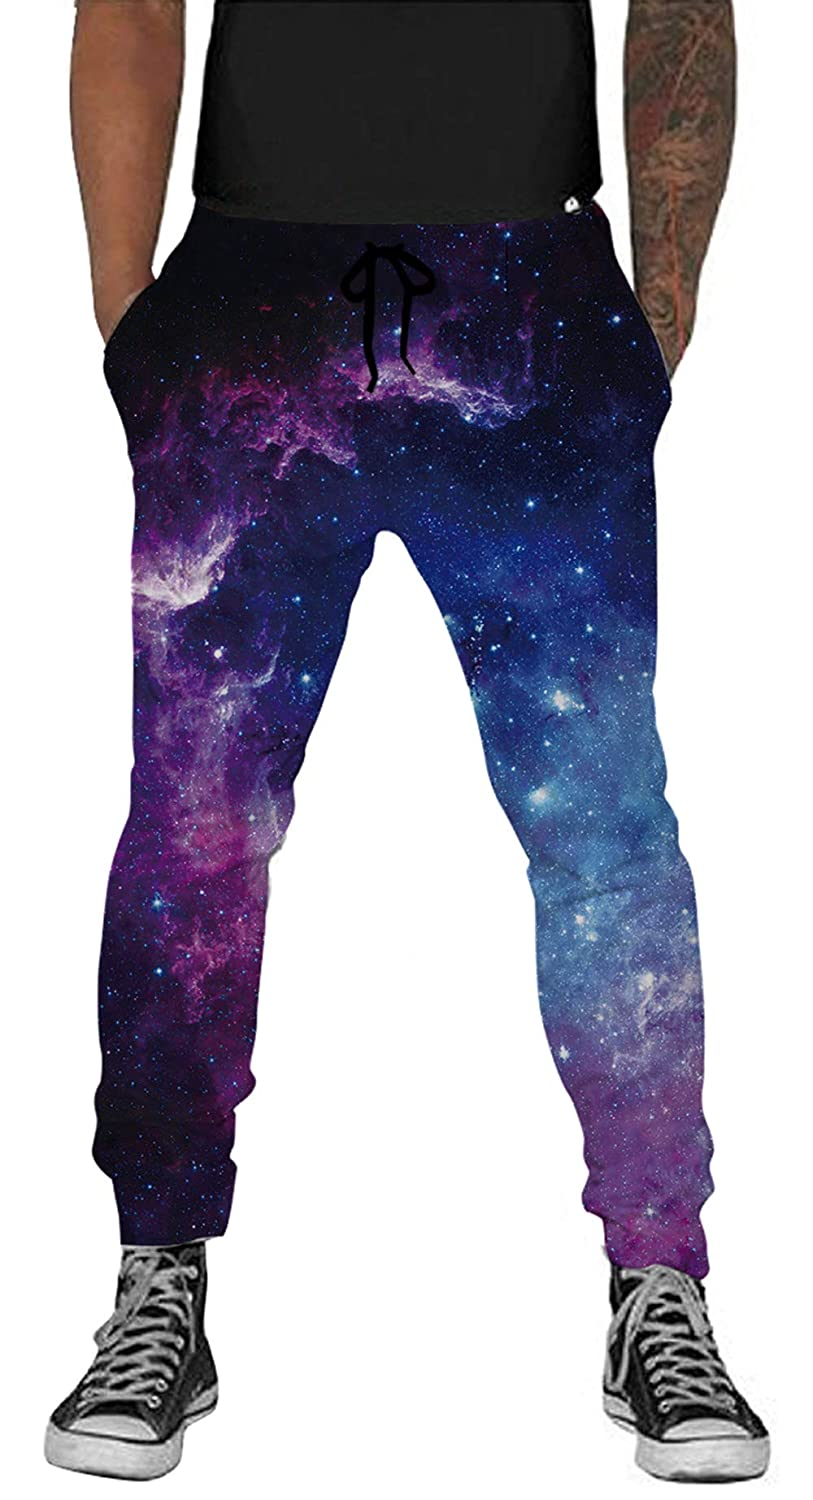 人気ブラドン Belovecol PANTS メンズ B07K45QNDH PANTS Galaxy-2a XX-Large Galaxy-2a メンズ XX-Large|Galaxy-2a, 白子町:1f1b204a --- svecha37.ru